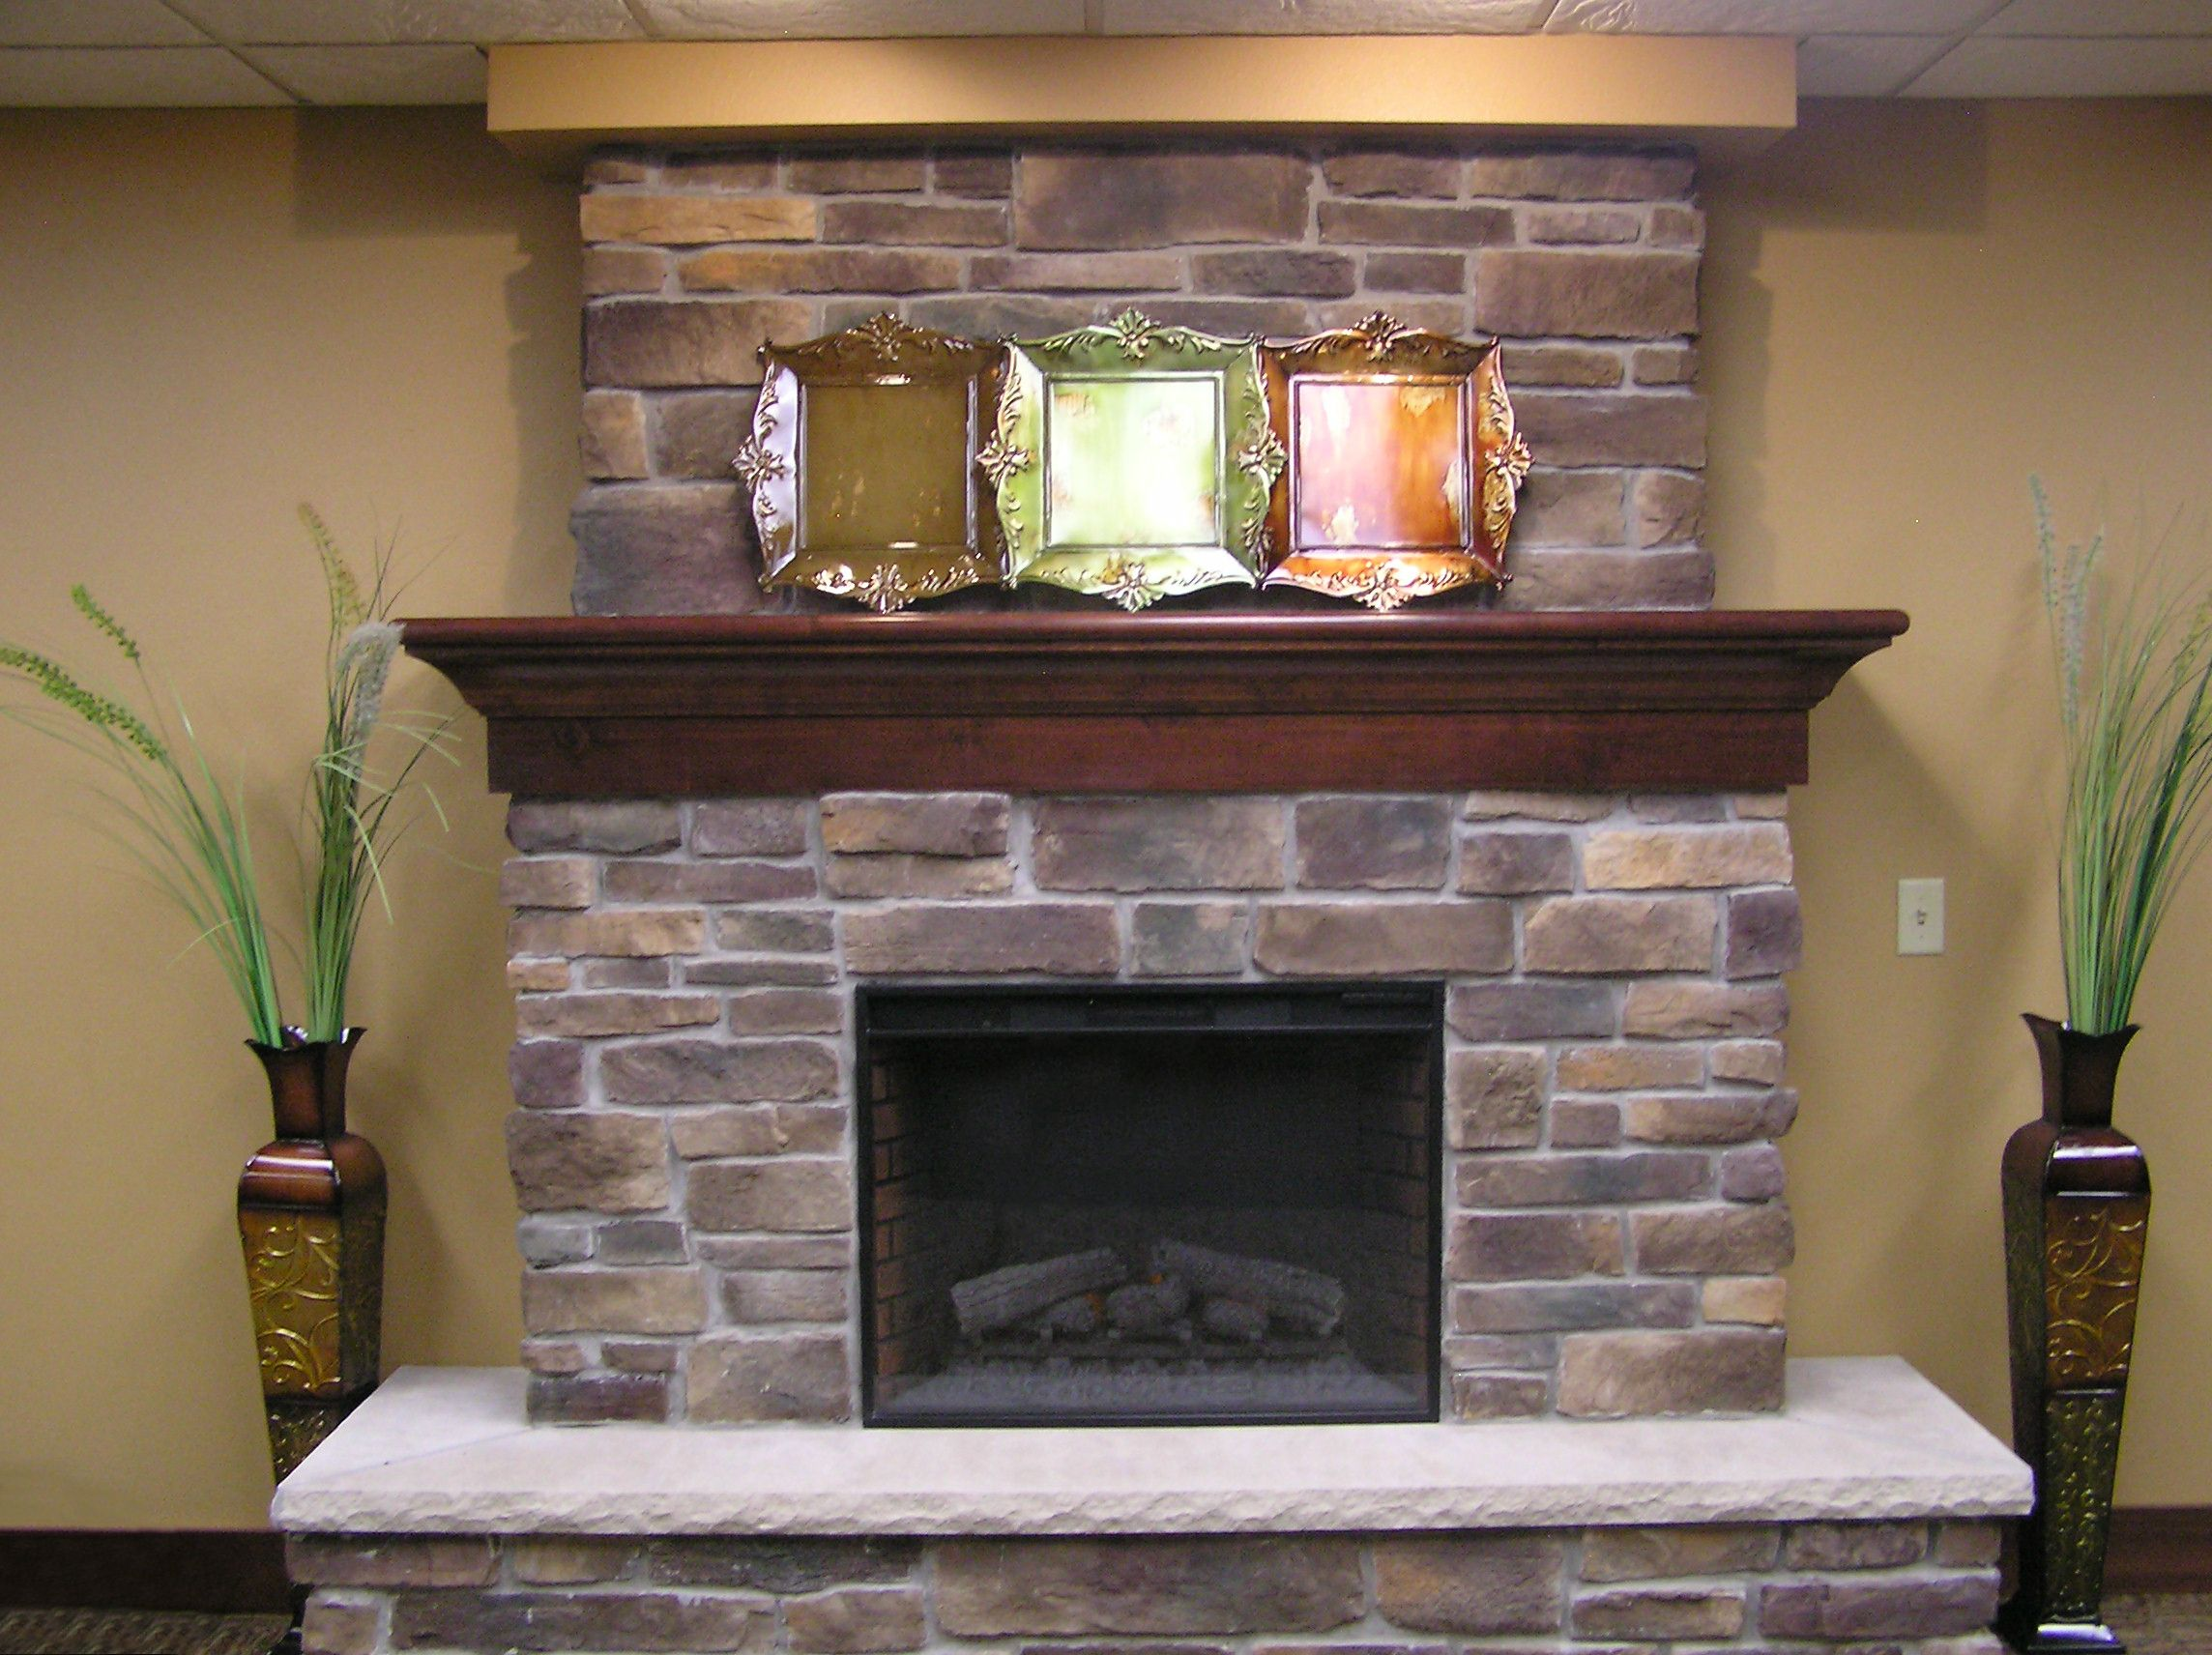 https://www.qwant.com/?q=fireplace mantel